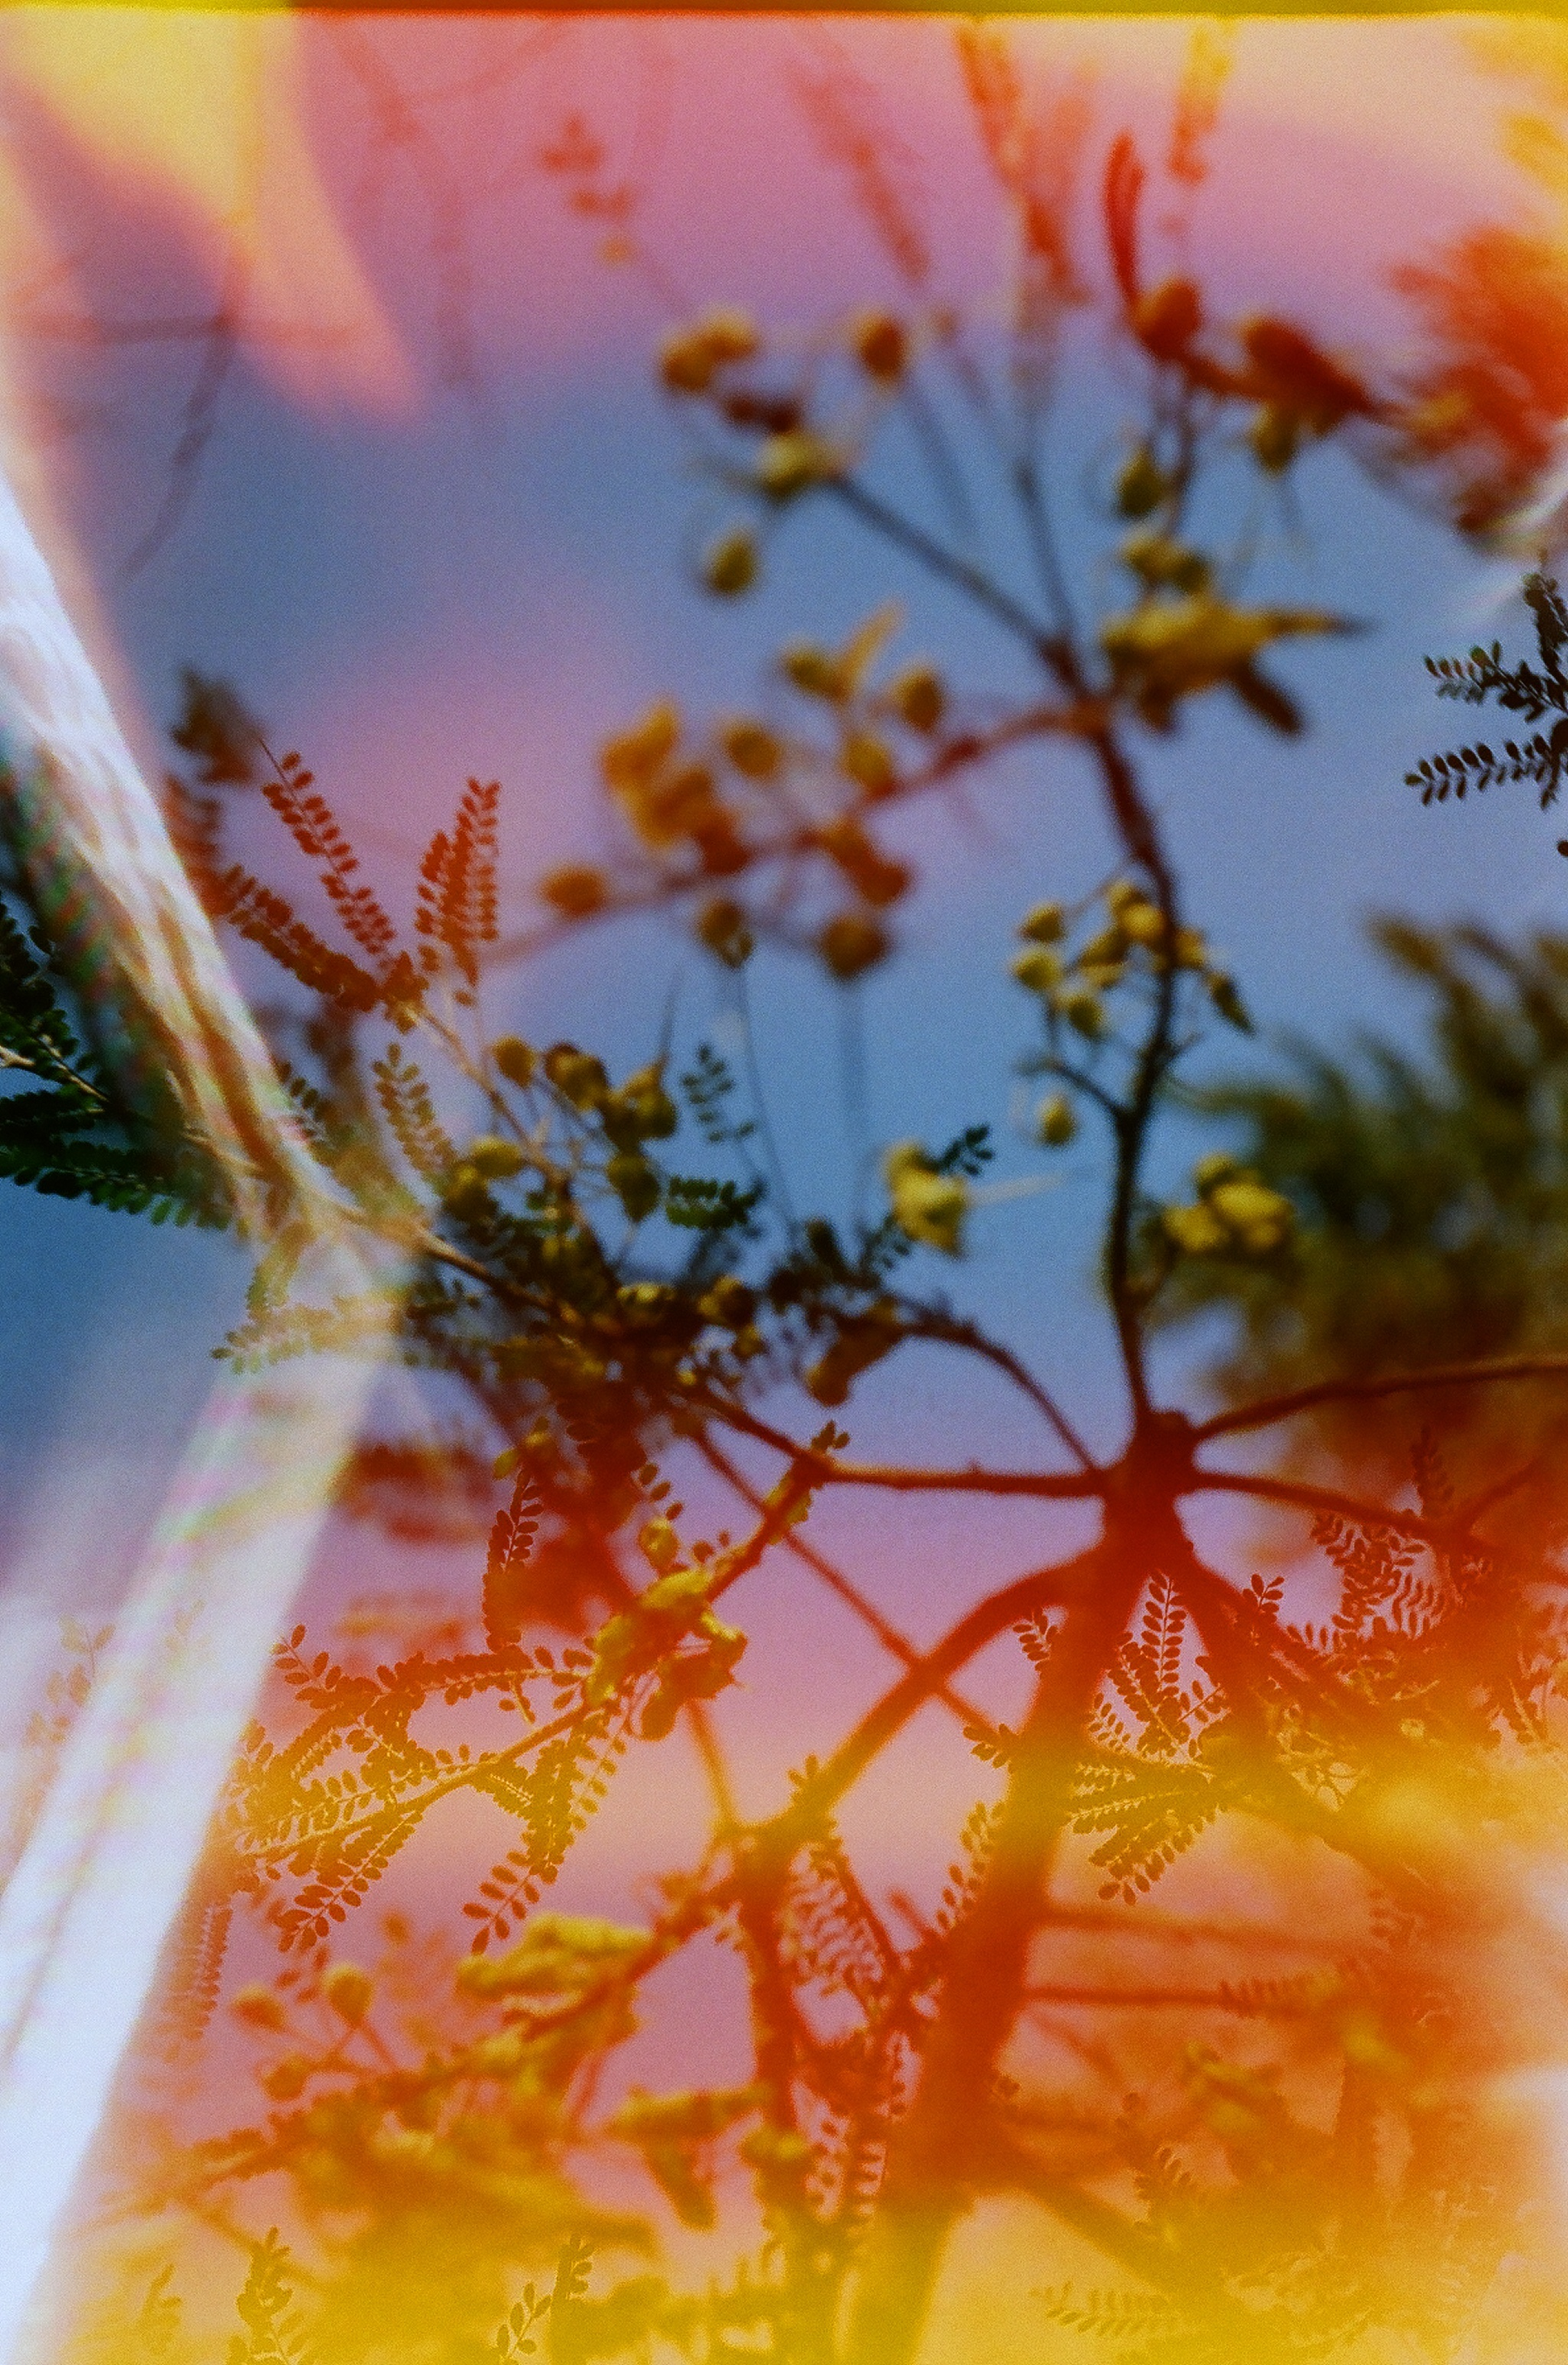 I quite like this Kowhai tree image taken on the Balda. It has a Lomography look to it with light spill, deep colours and some double exposure.